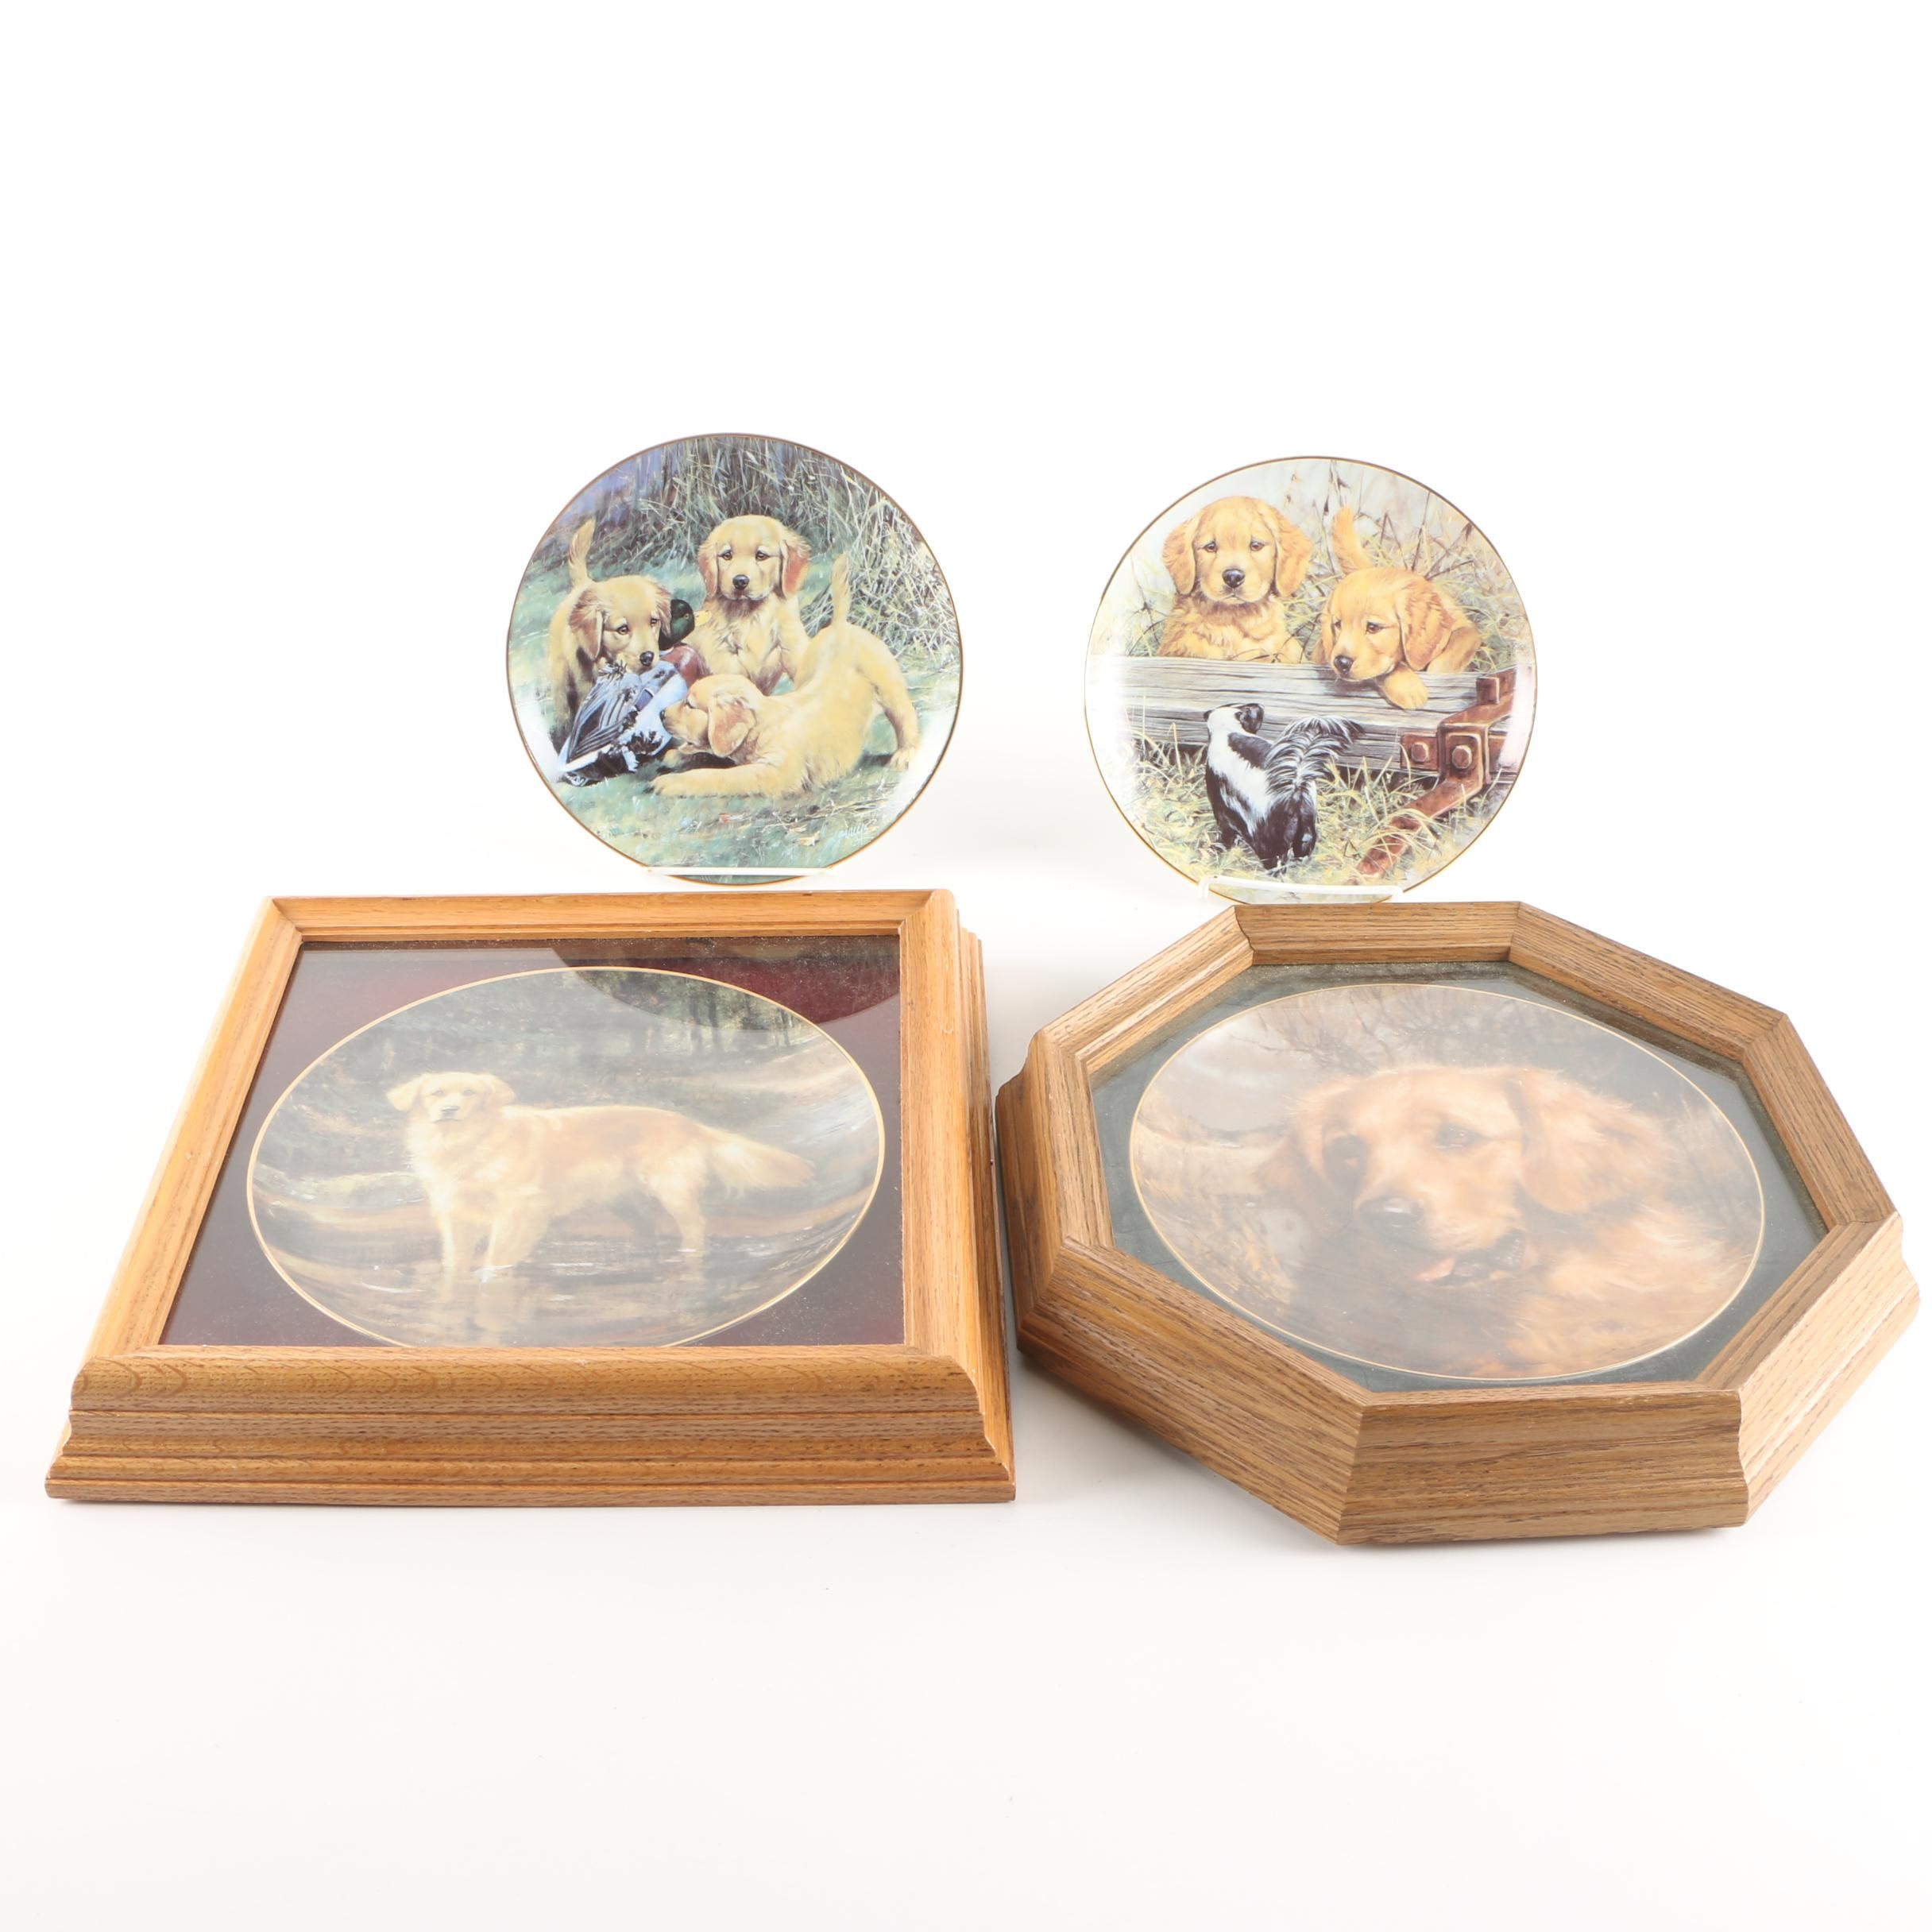 """Limited Edition Wild Things and CUI Inc. """"Golden Retriever"""" Decorative Plates"""